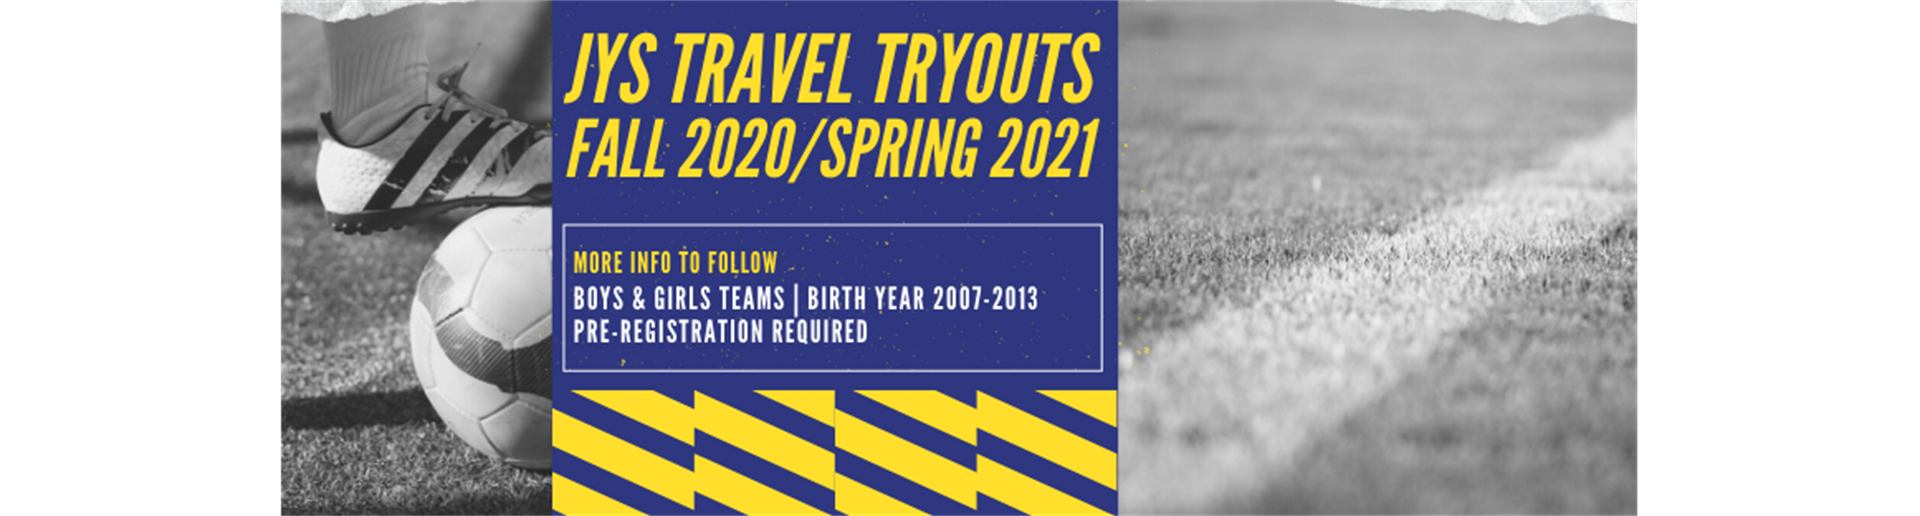 Register for Travel Tryouts Now